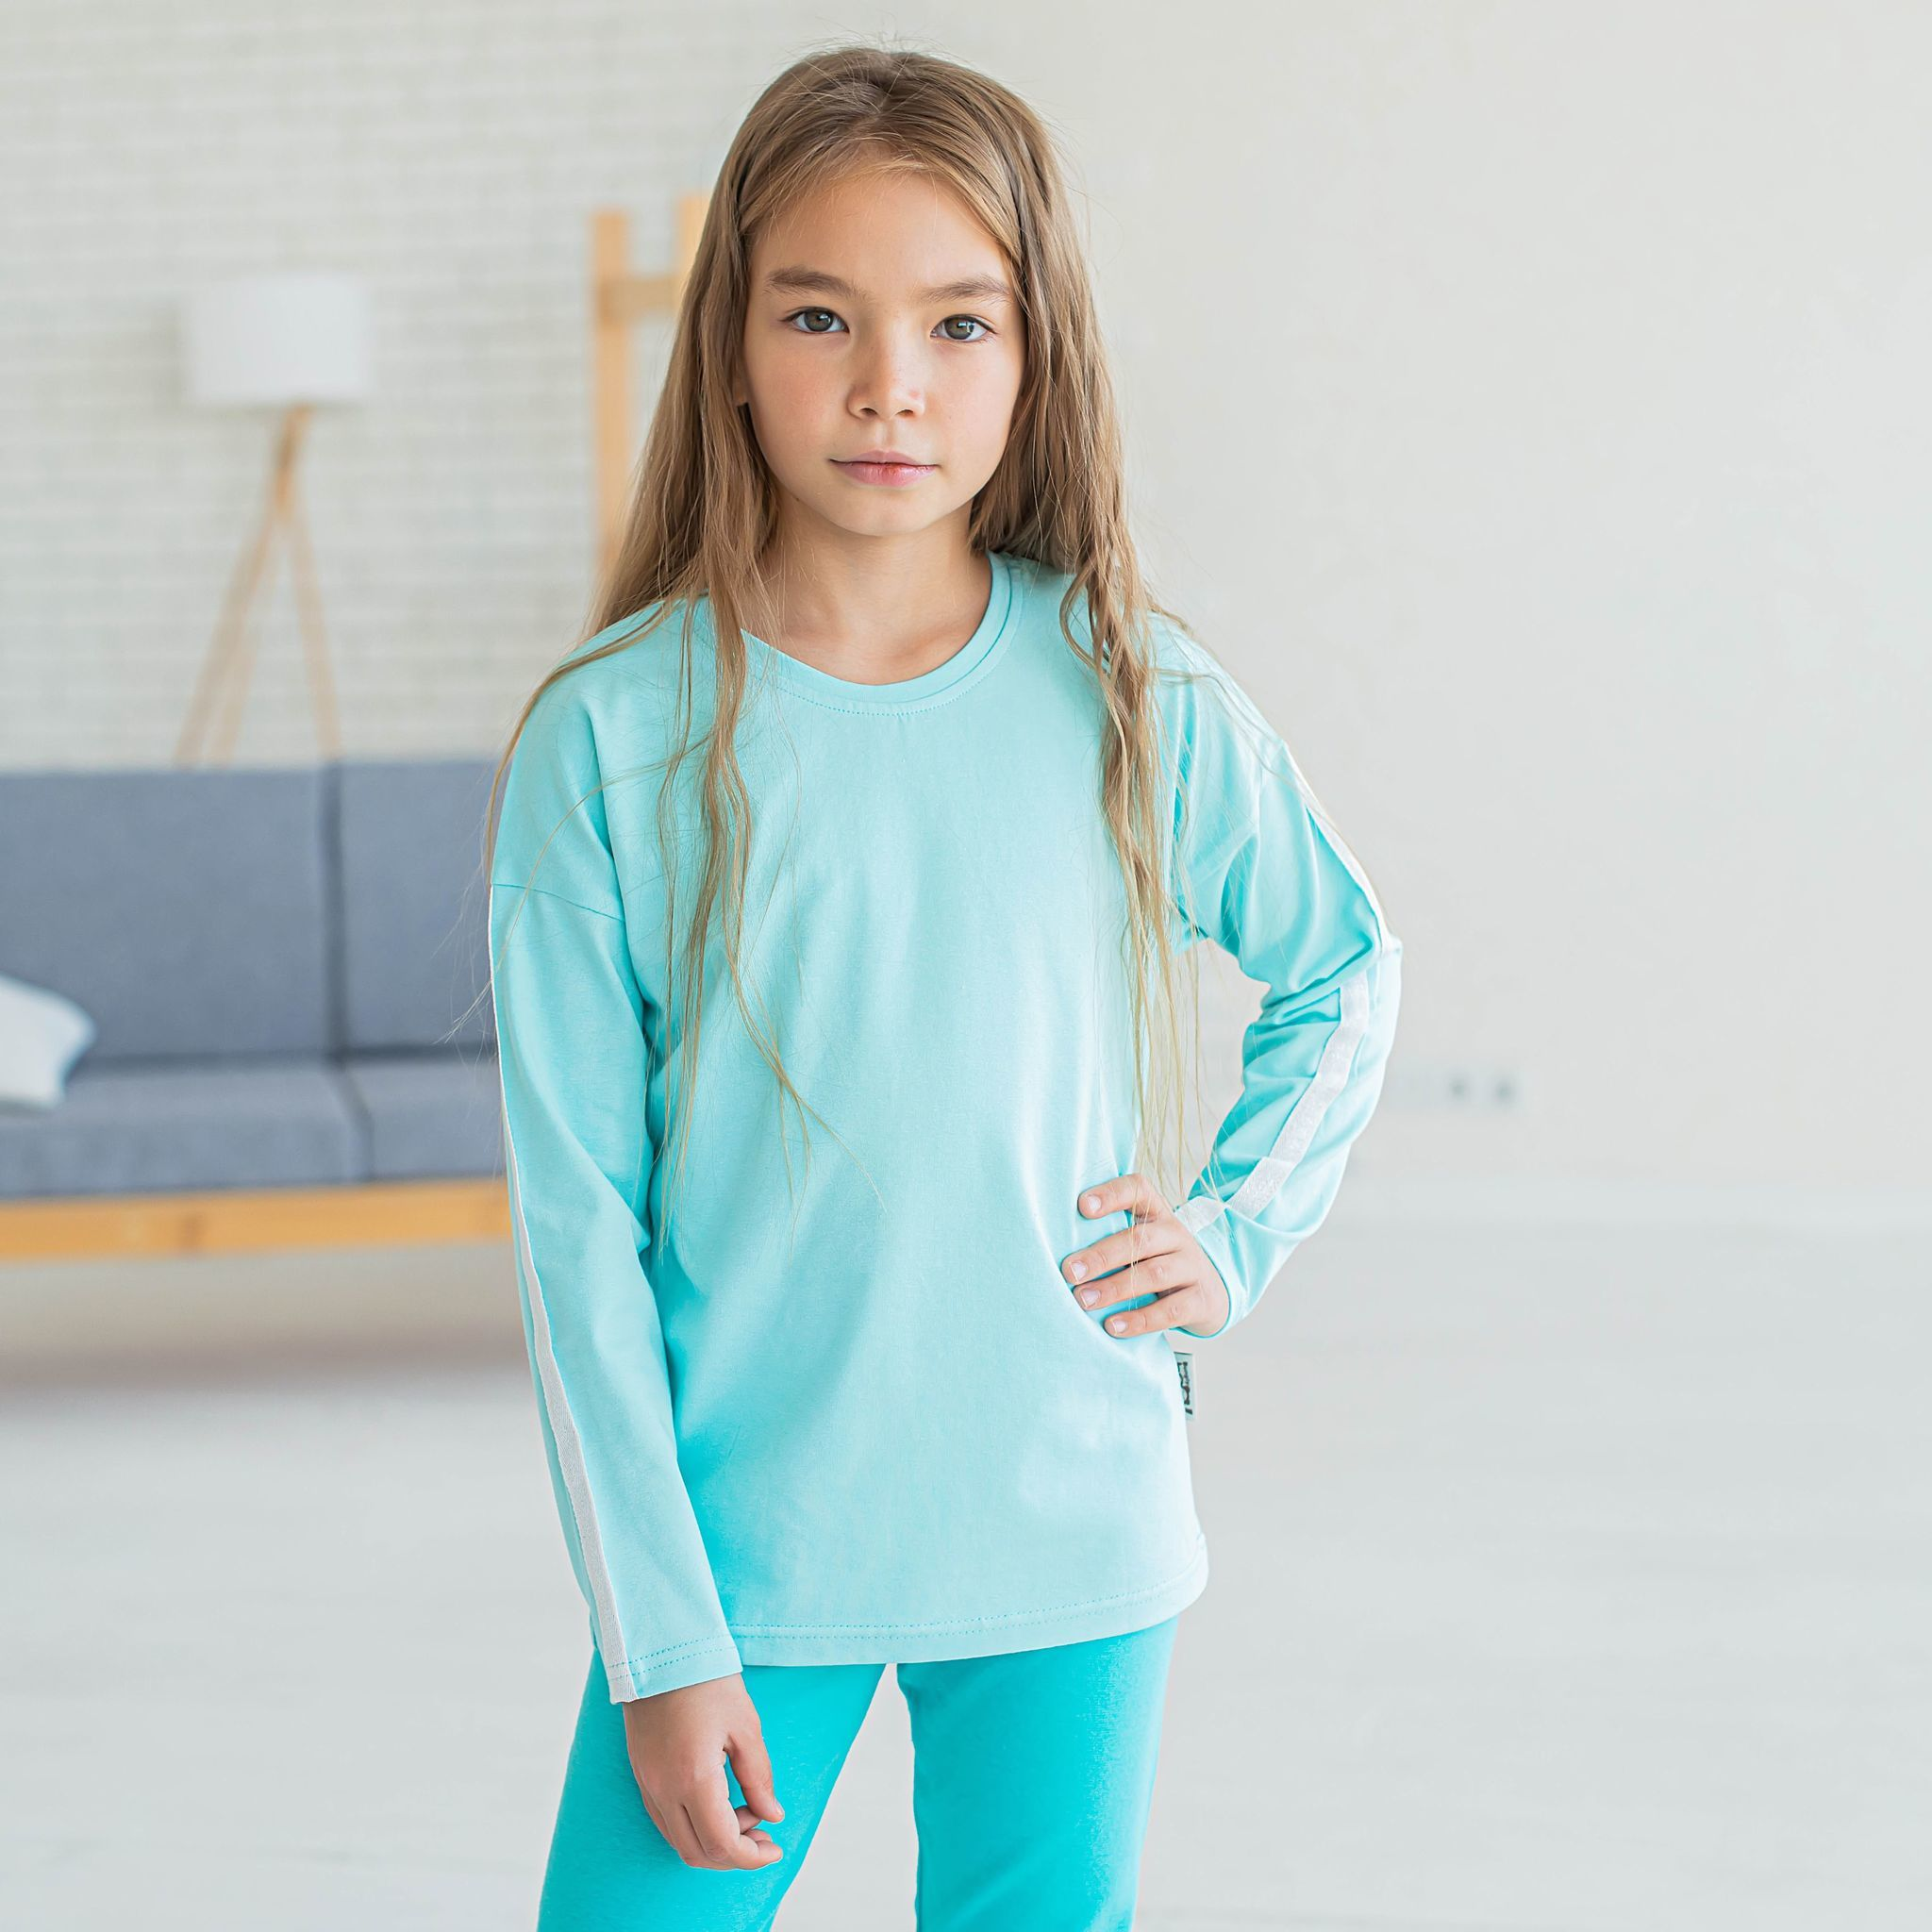 Long-sleeved t-shirt with stripes for teens - Mint